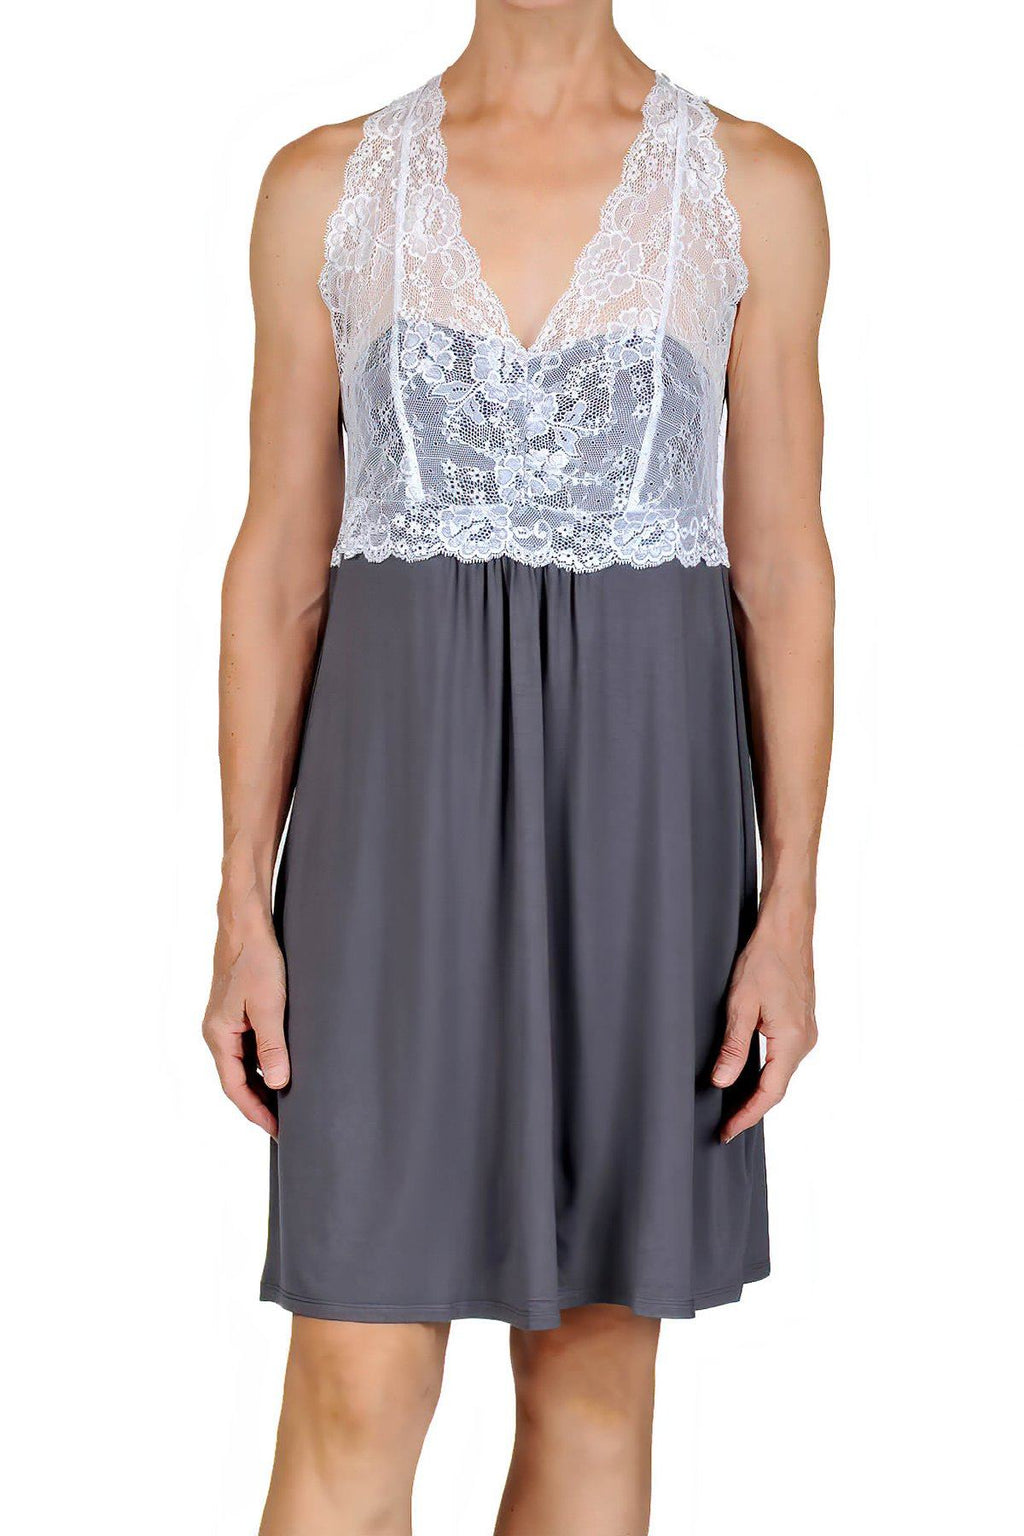 Catarina Knit Chemise Nightgown - Charcoal with White Lace Mystique Intimates